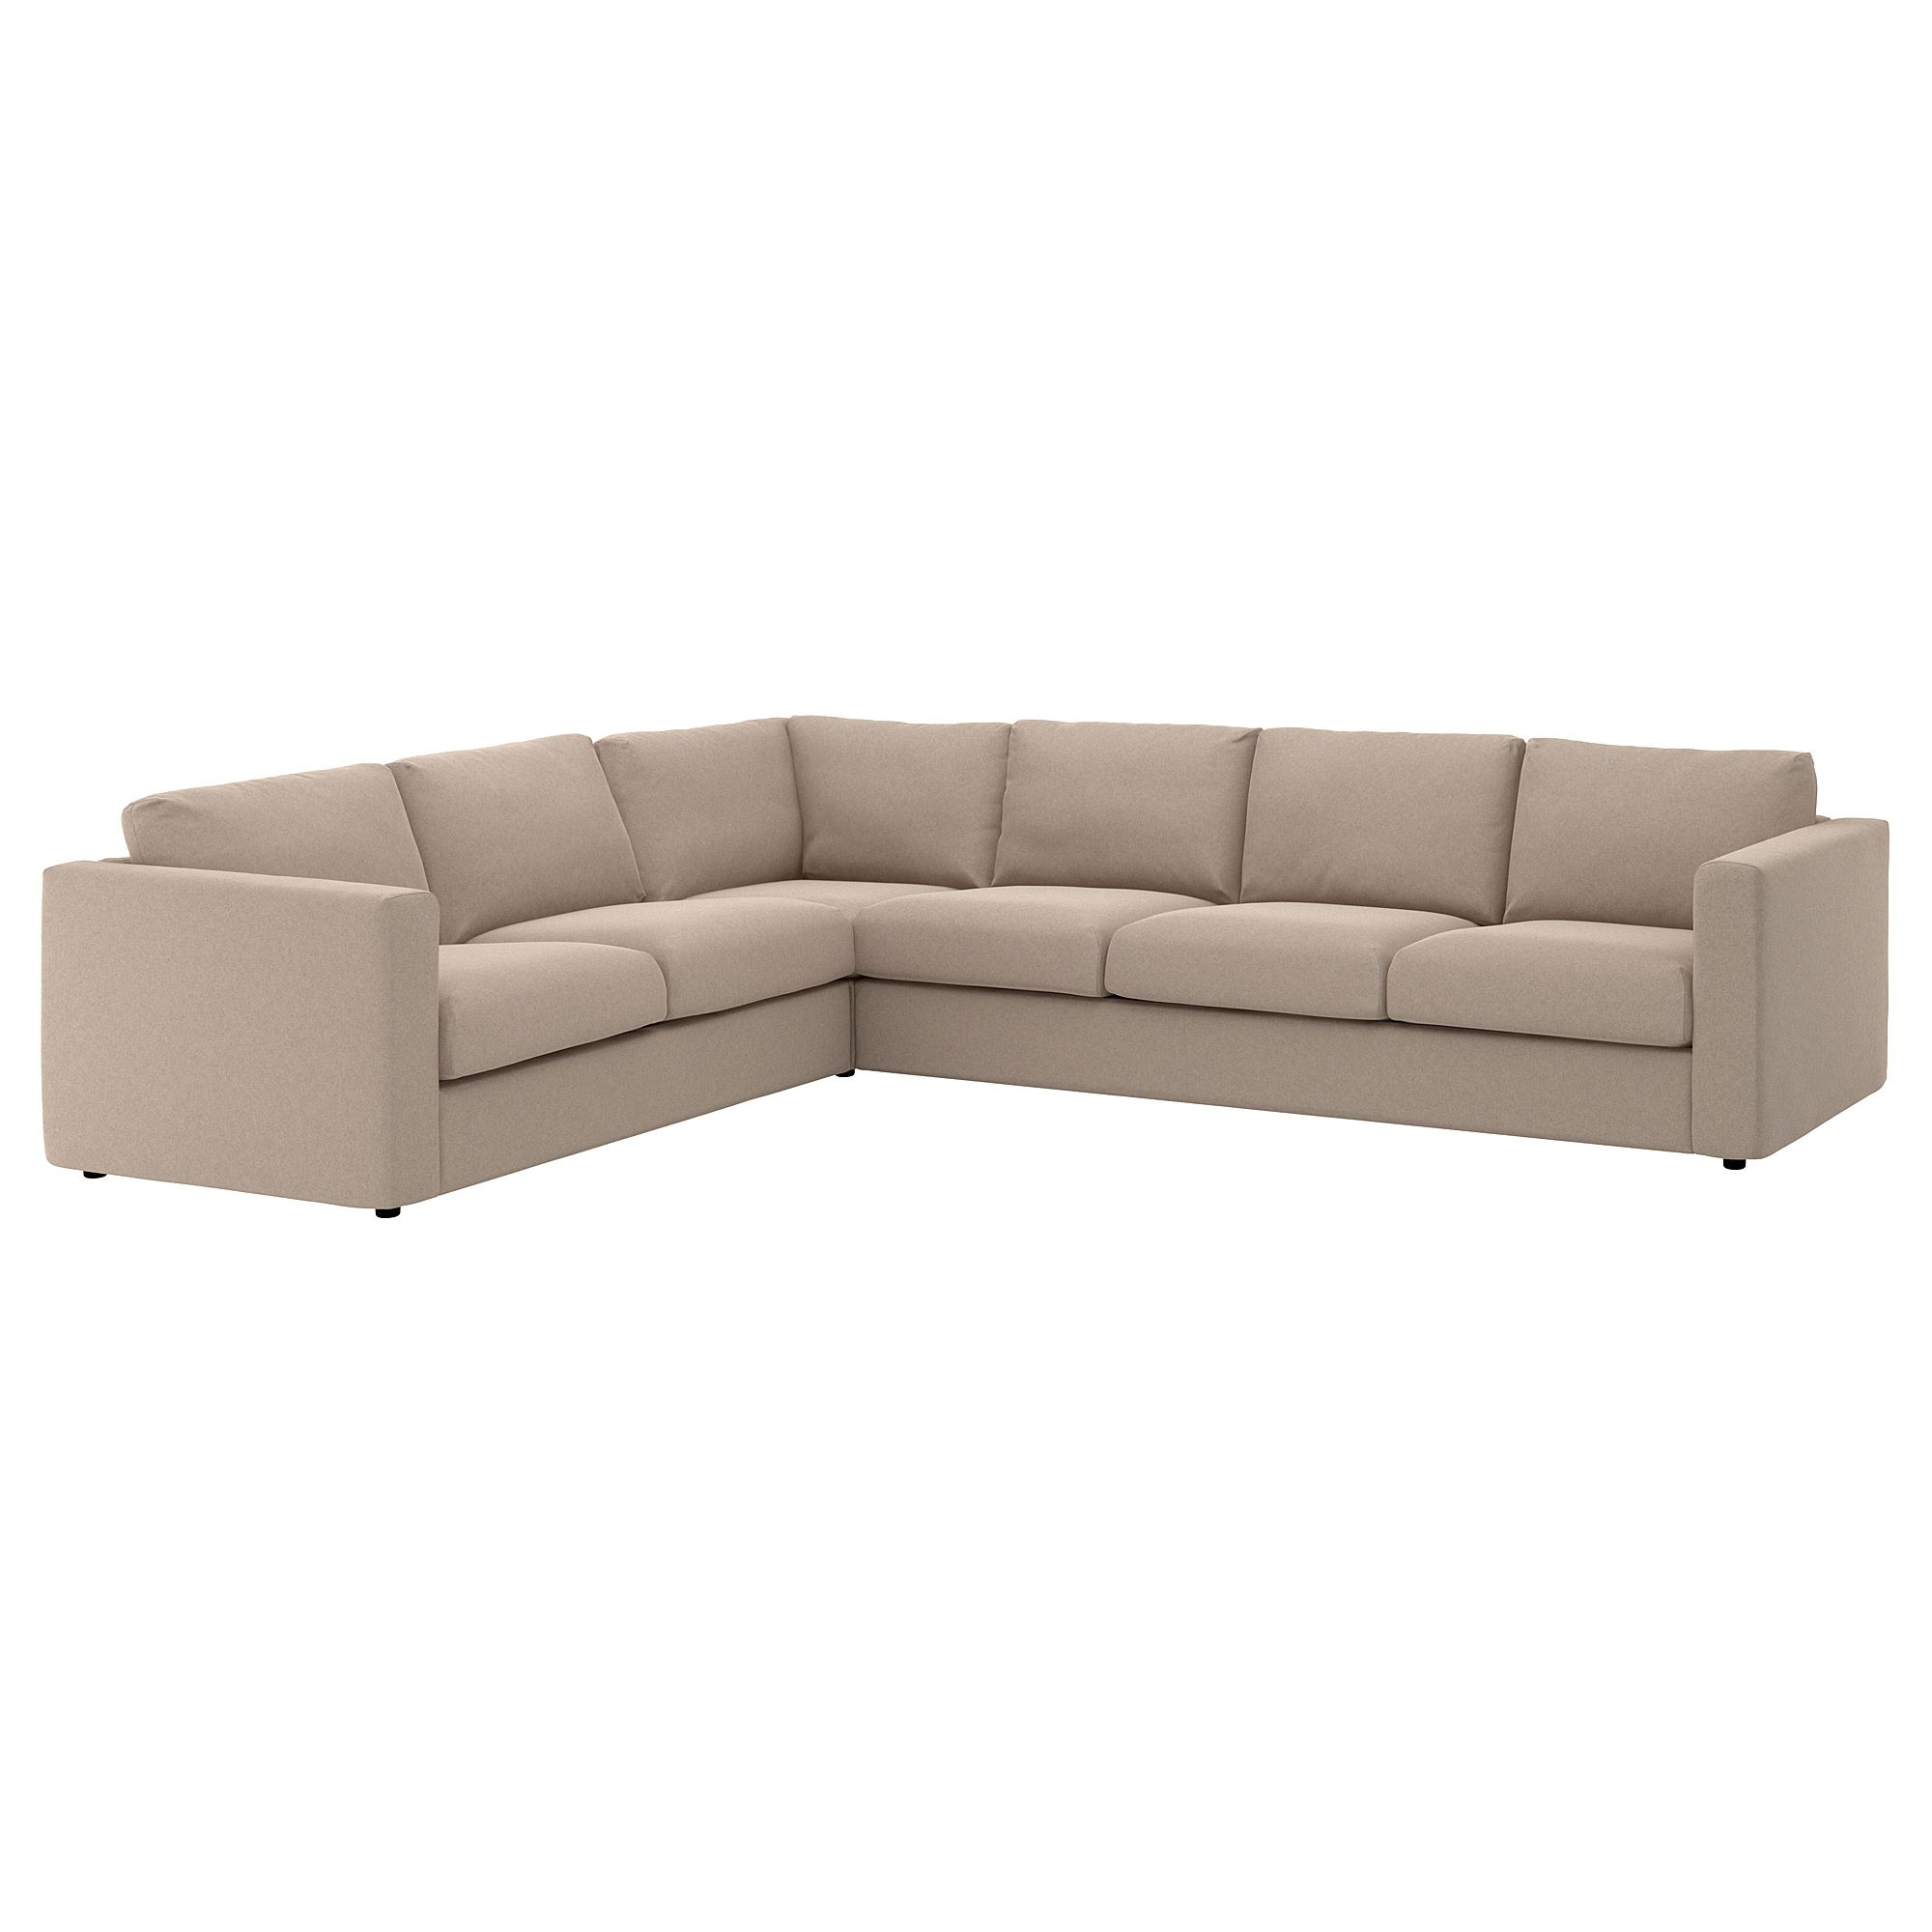 Eckcouch Beige Vimle Cover For Sectional 5 Seat Tallmyra Beige In 2019